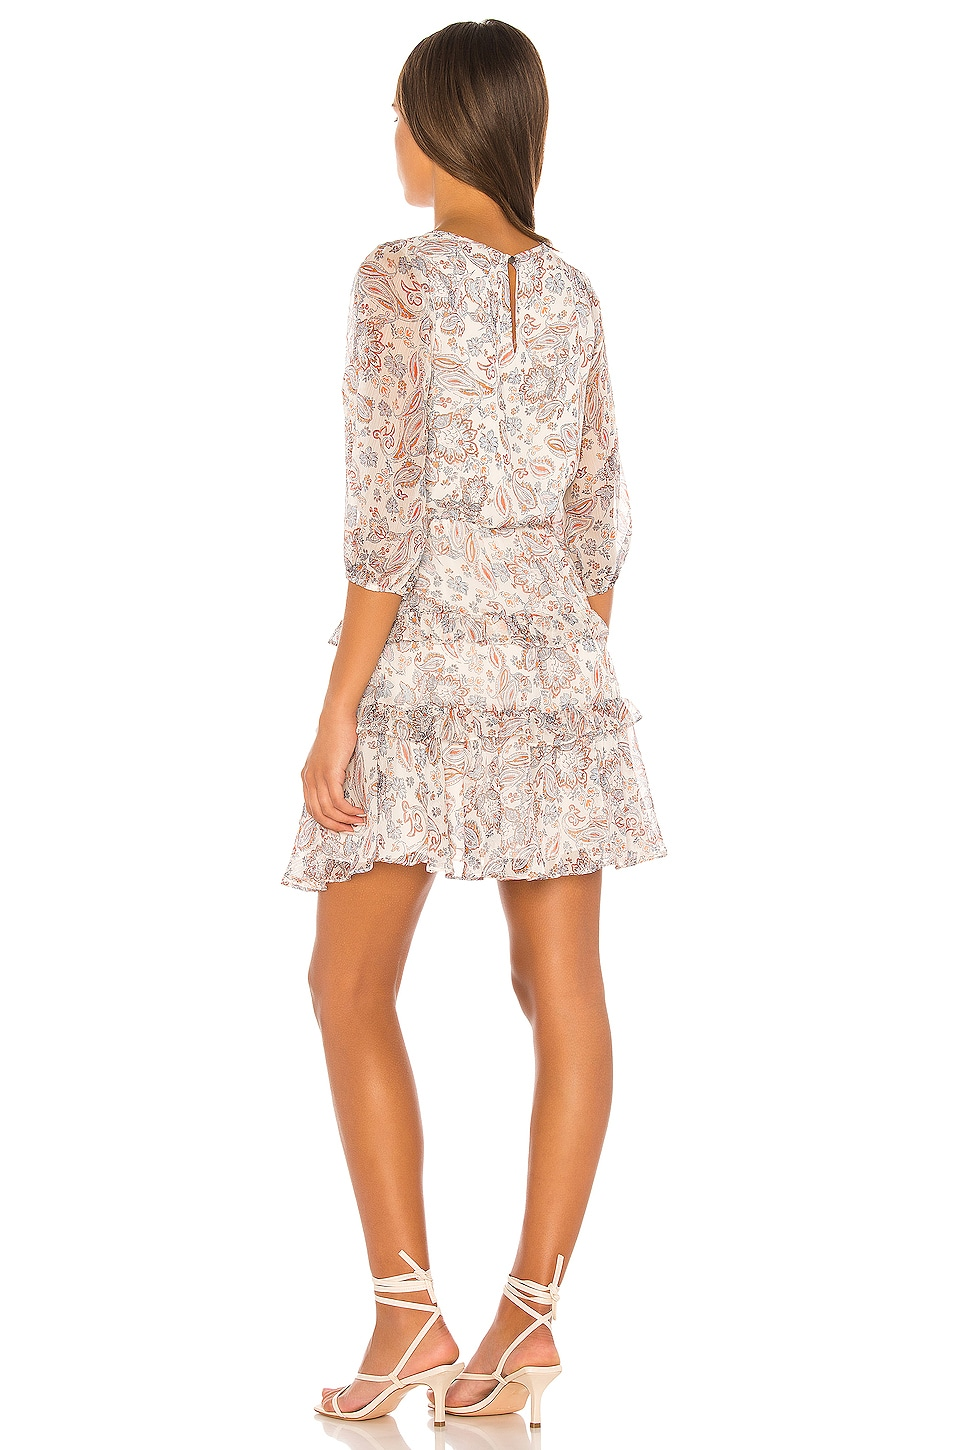 Tiered Ruffle Lyrical Paisley Dress, view 3, click to view large image.